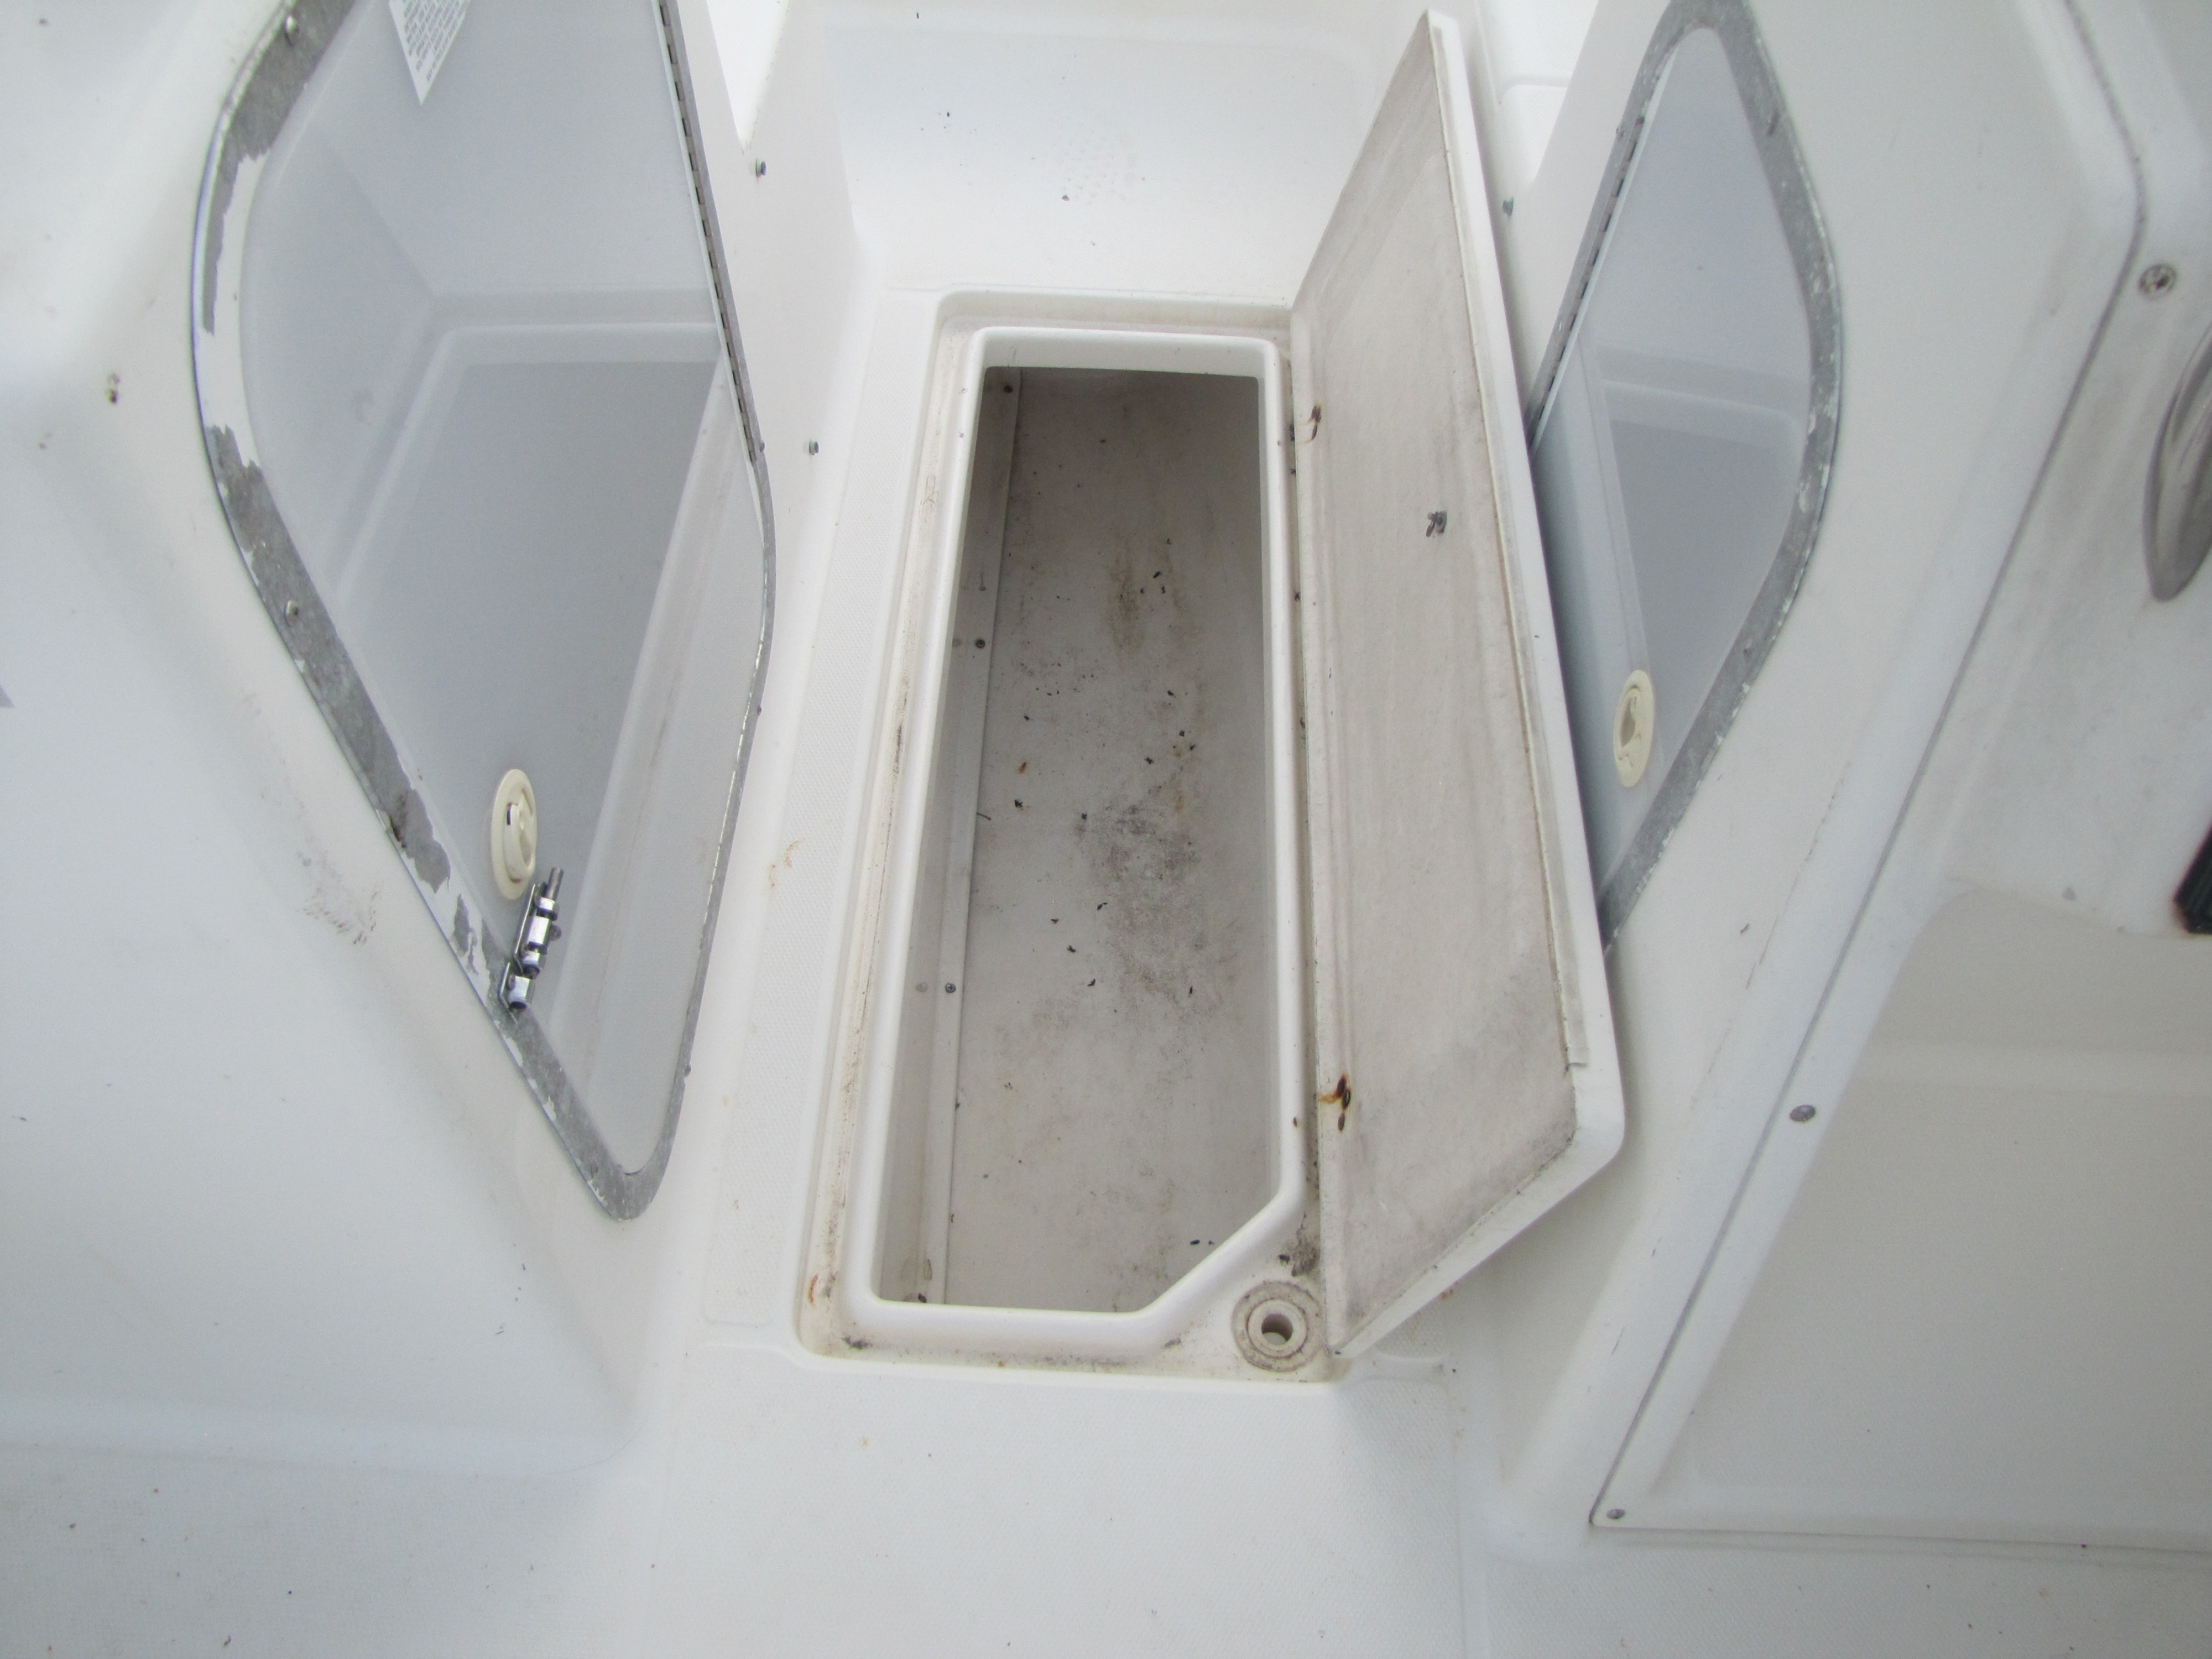 2000 Aquasport boat for sale, model of the boat is 215 Osprey Sport & Image # 3 of 21